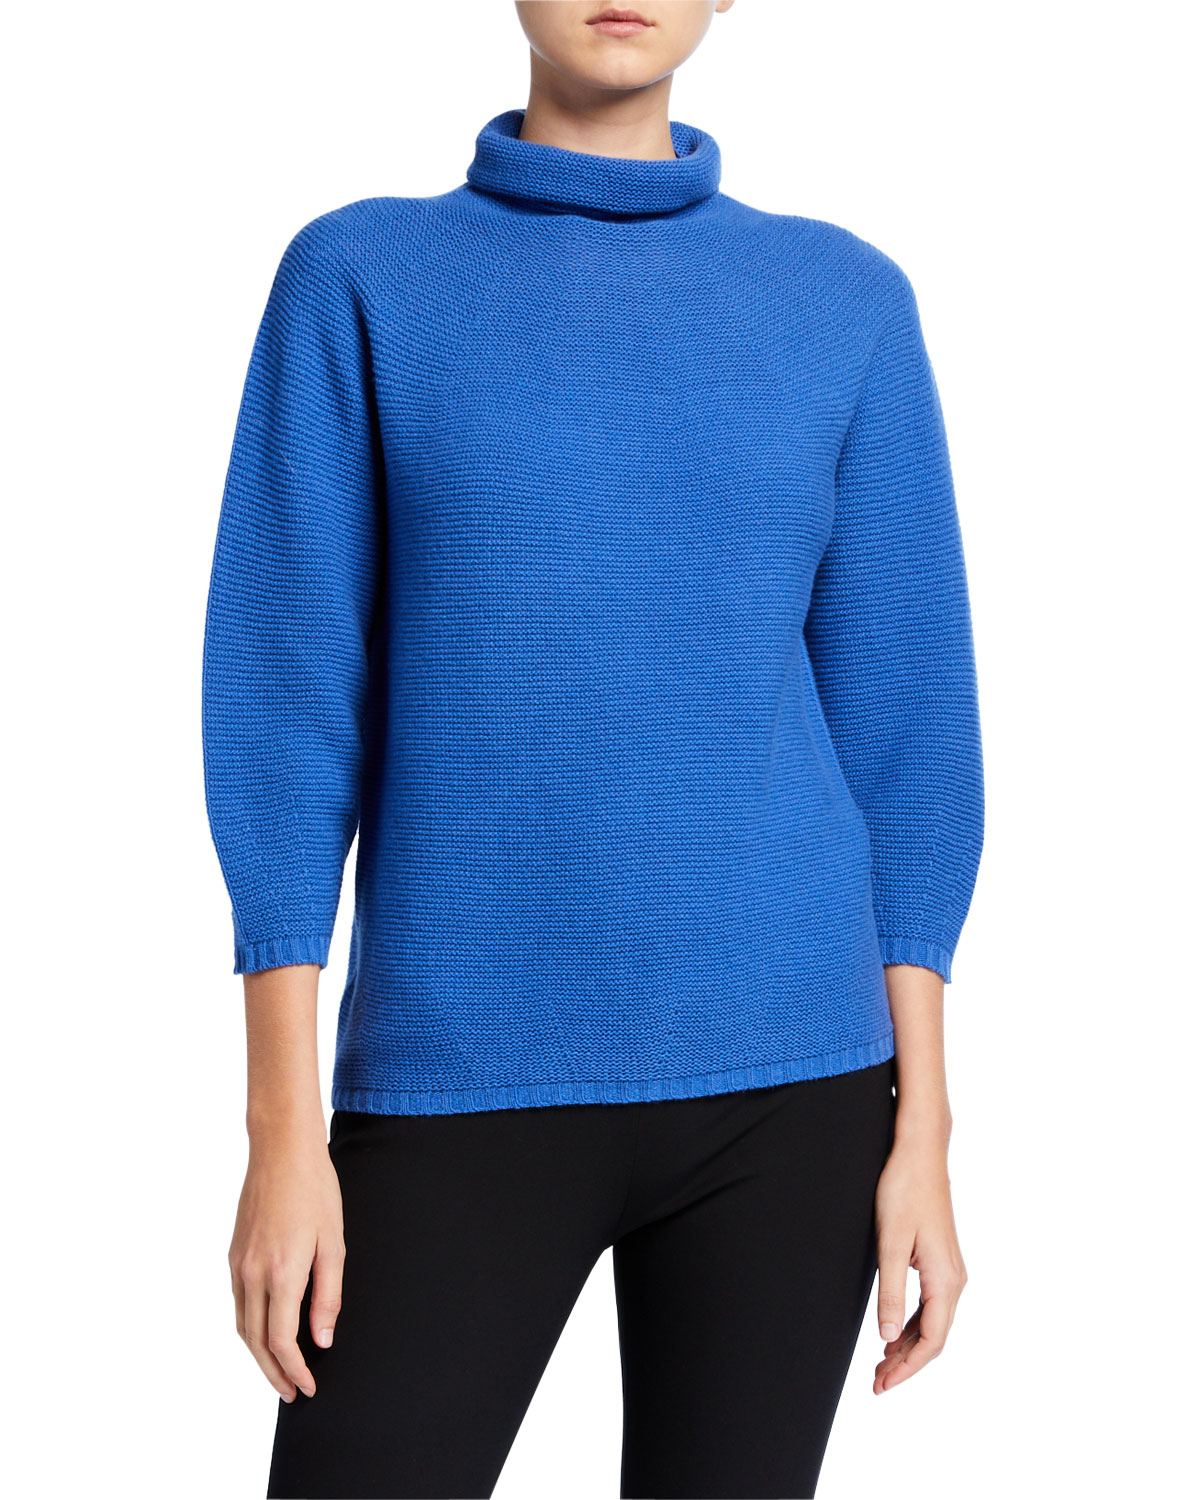 Max Mara Sweaters ETRUSCO TURTLENECK SWEATER